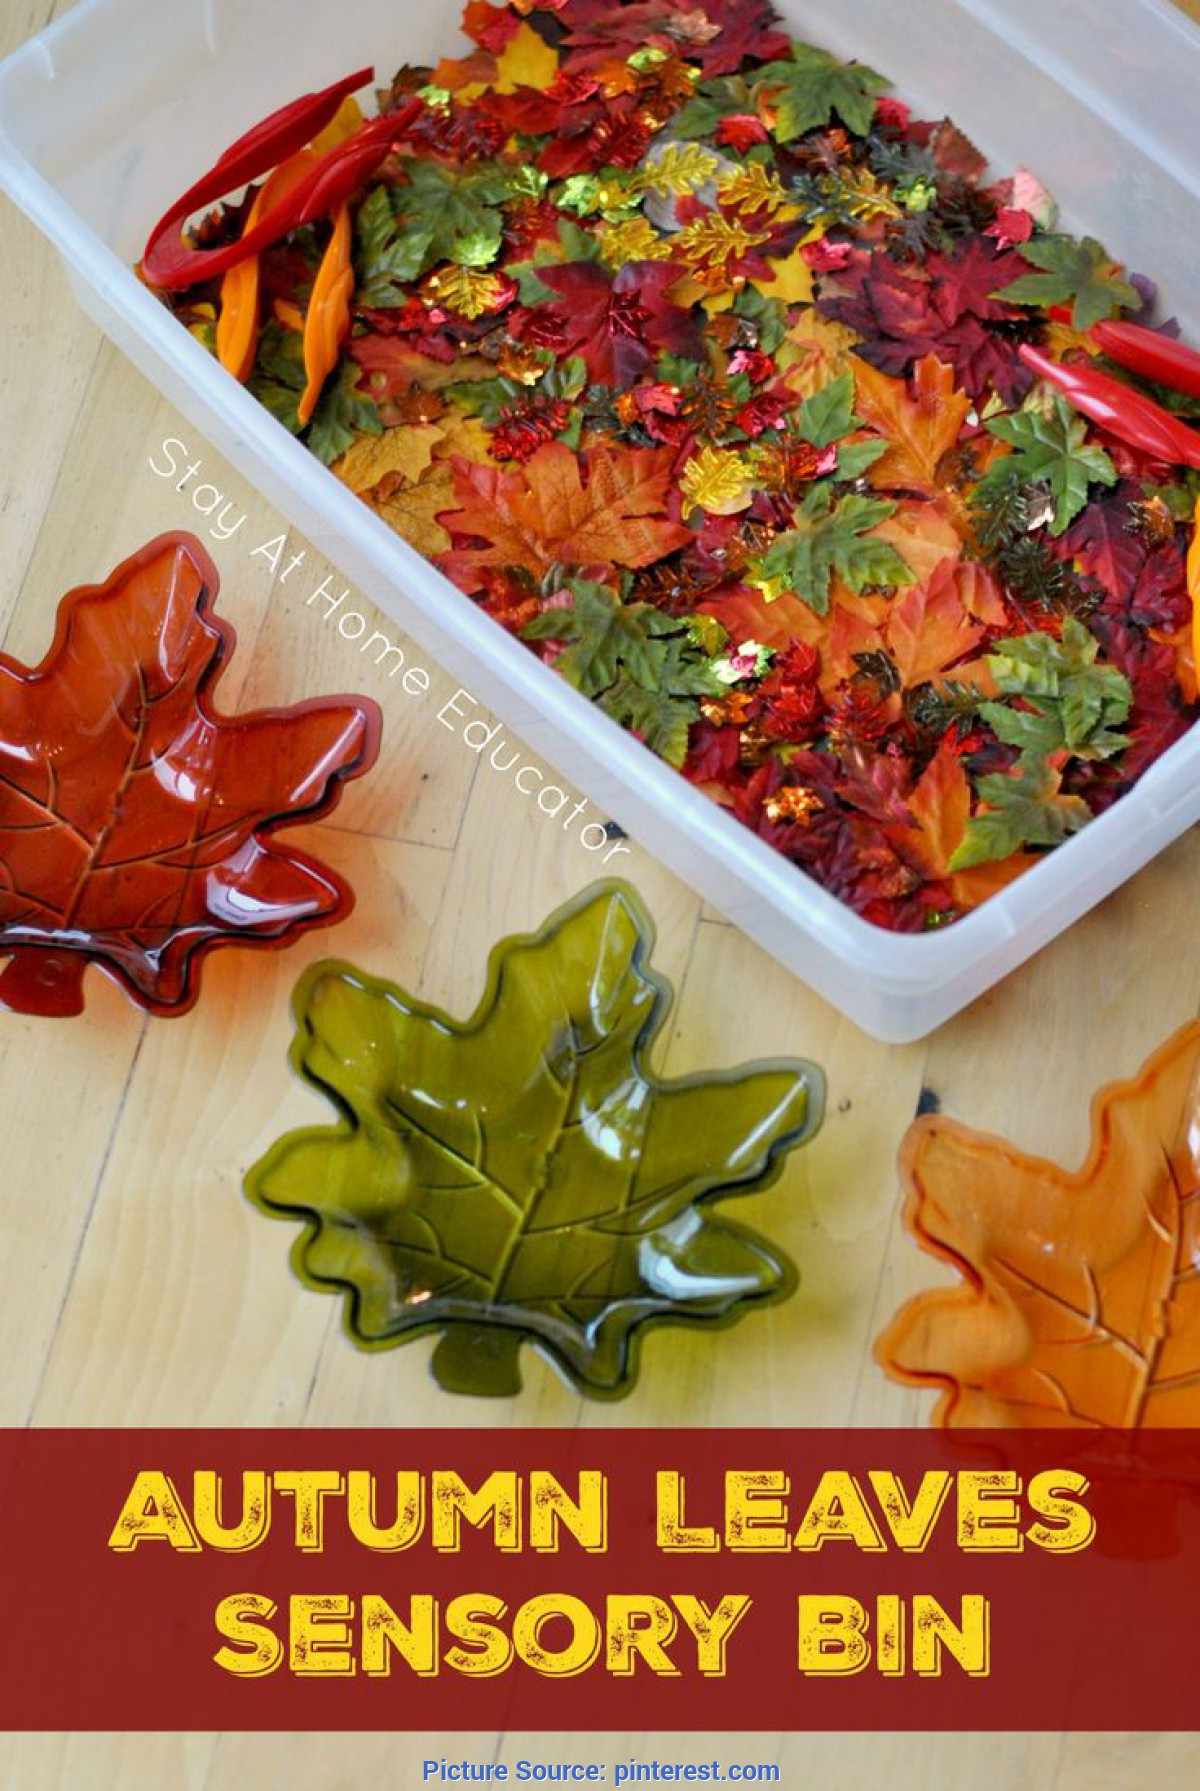 Typical Autumn Leaves Activities Autumn Leaves Sensory Bin | Activities, Leaves And Au